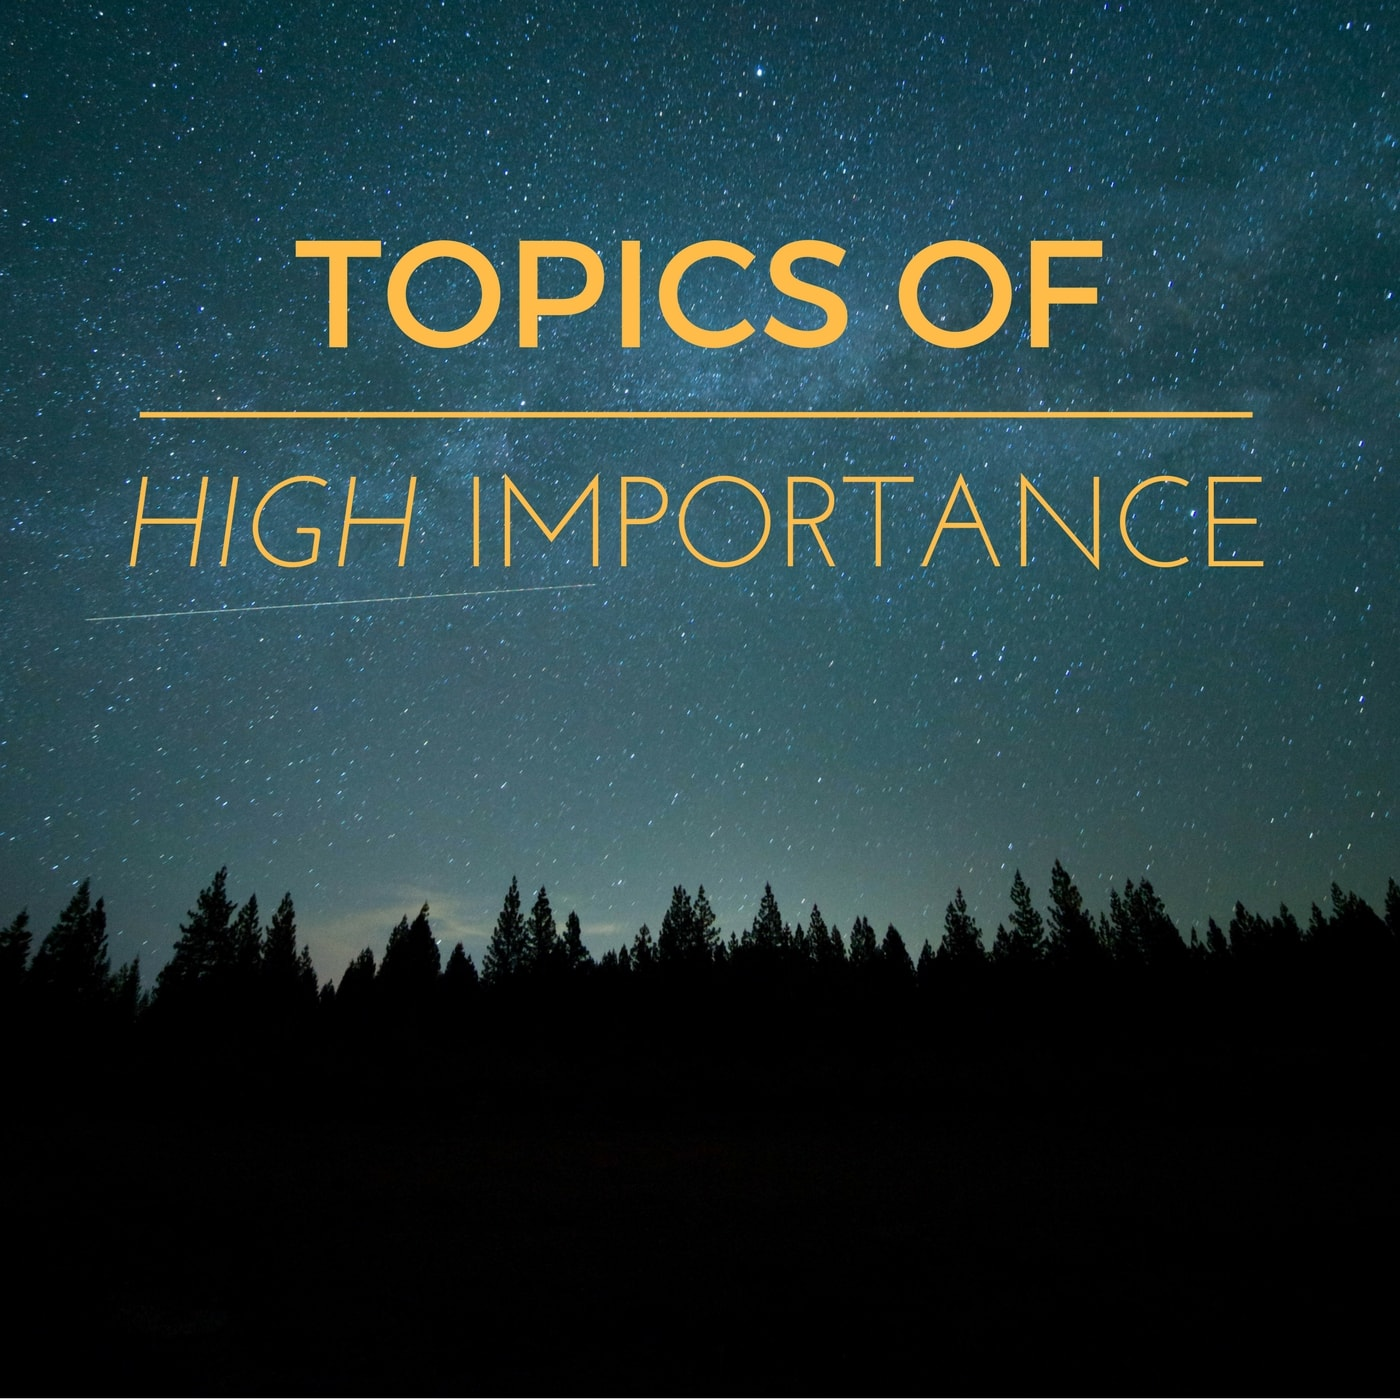 Topics of High Importance